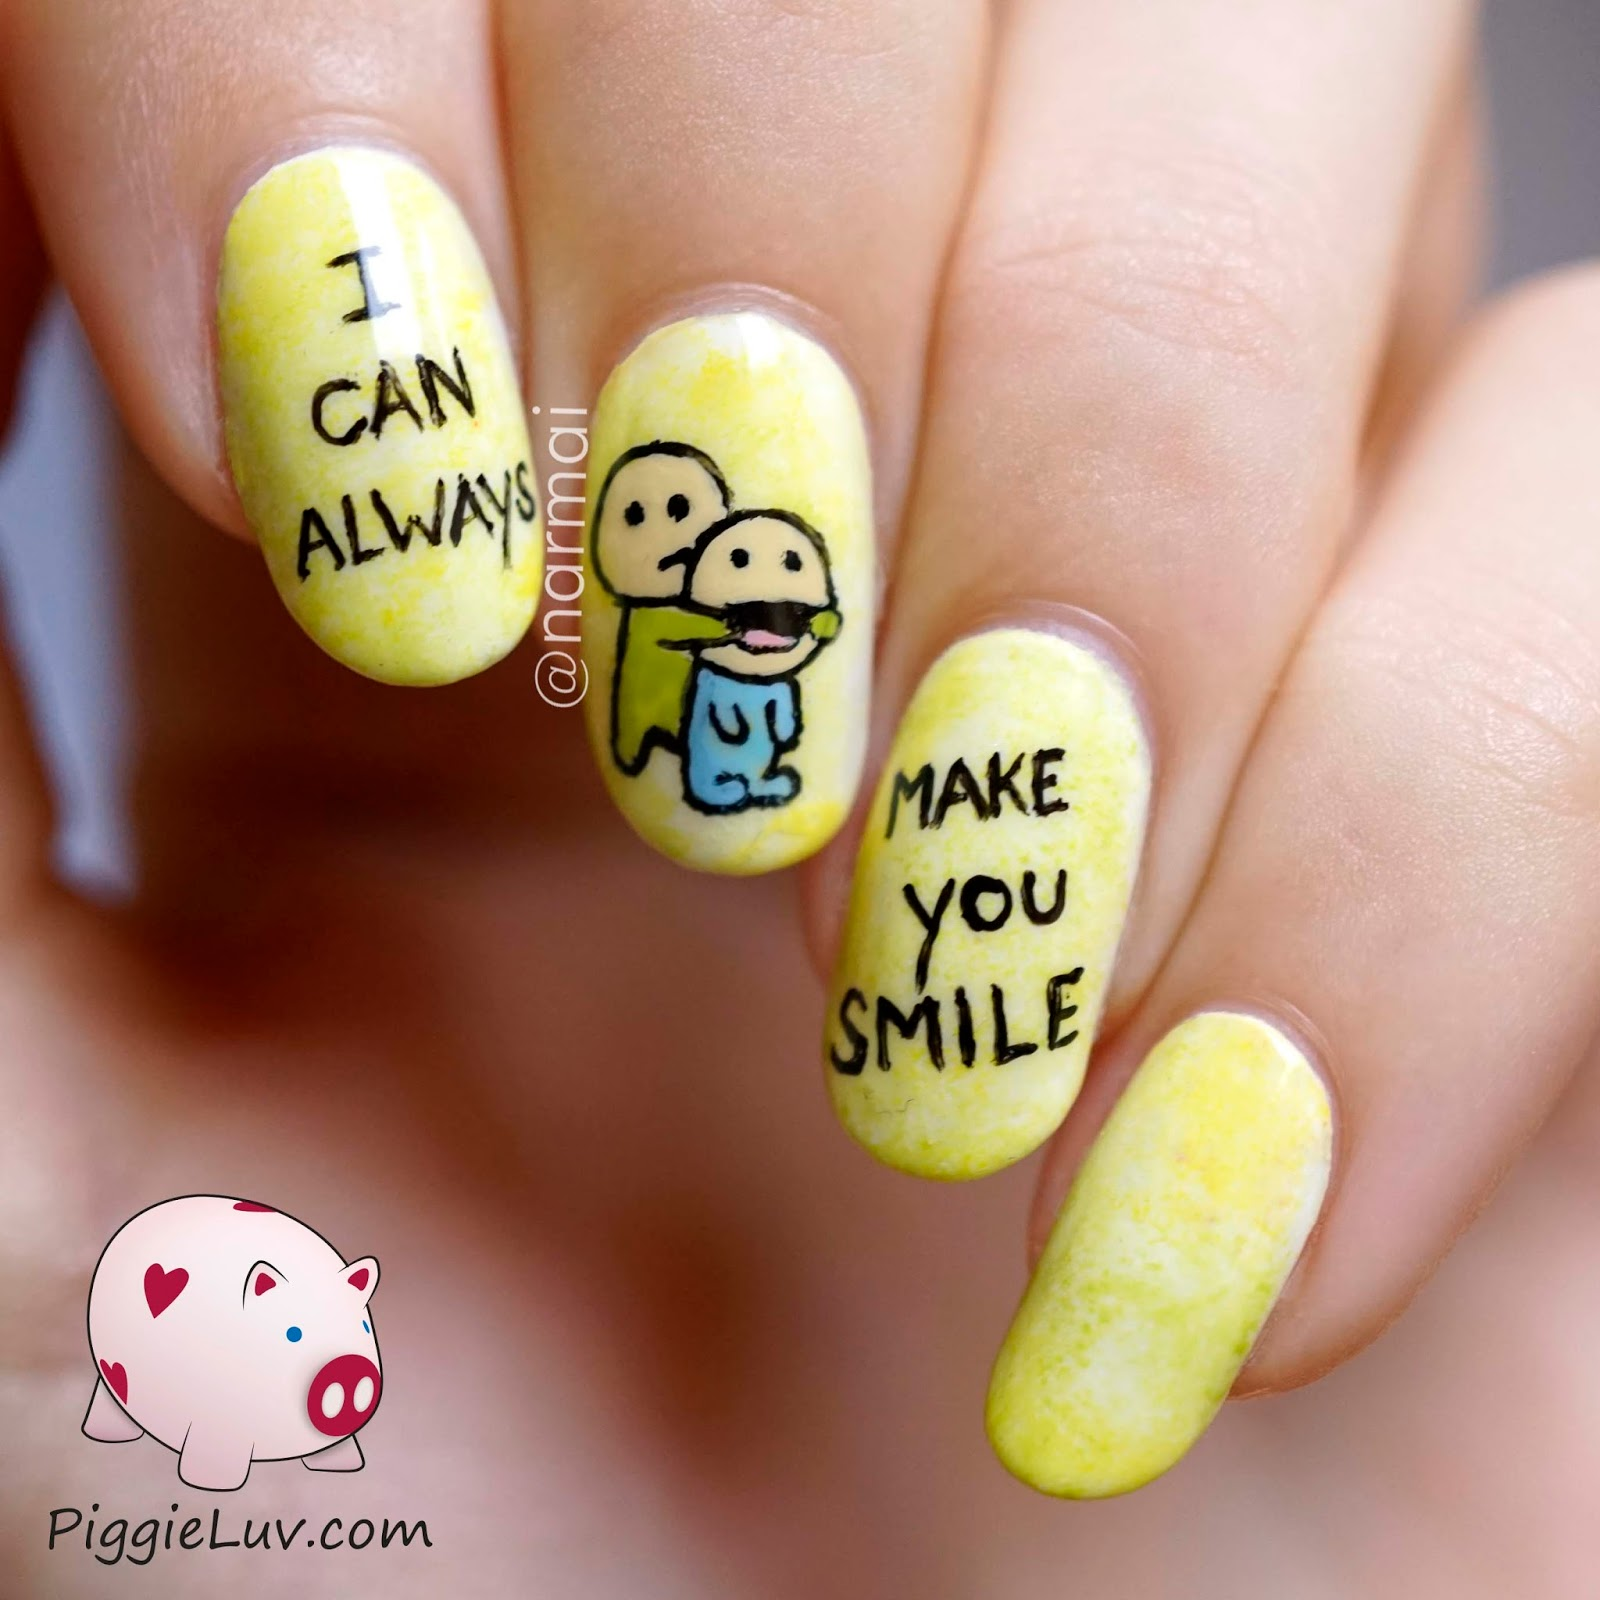 PiggieLuv: I can always make you smile! Happy nail art